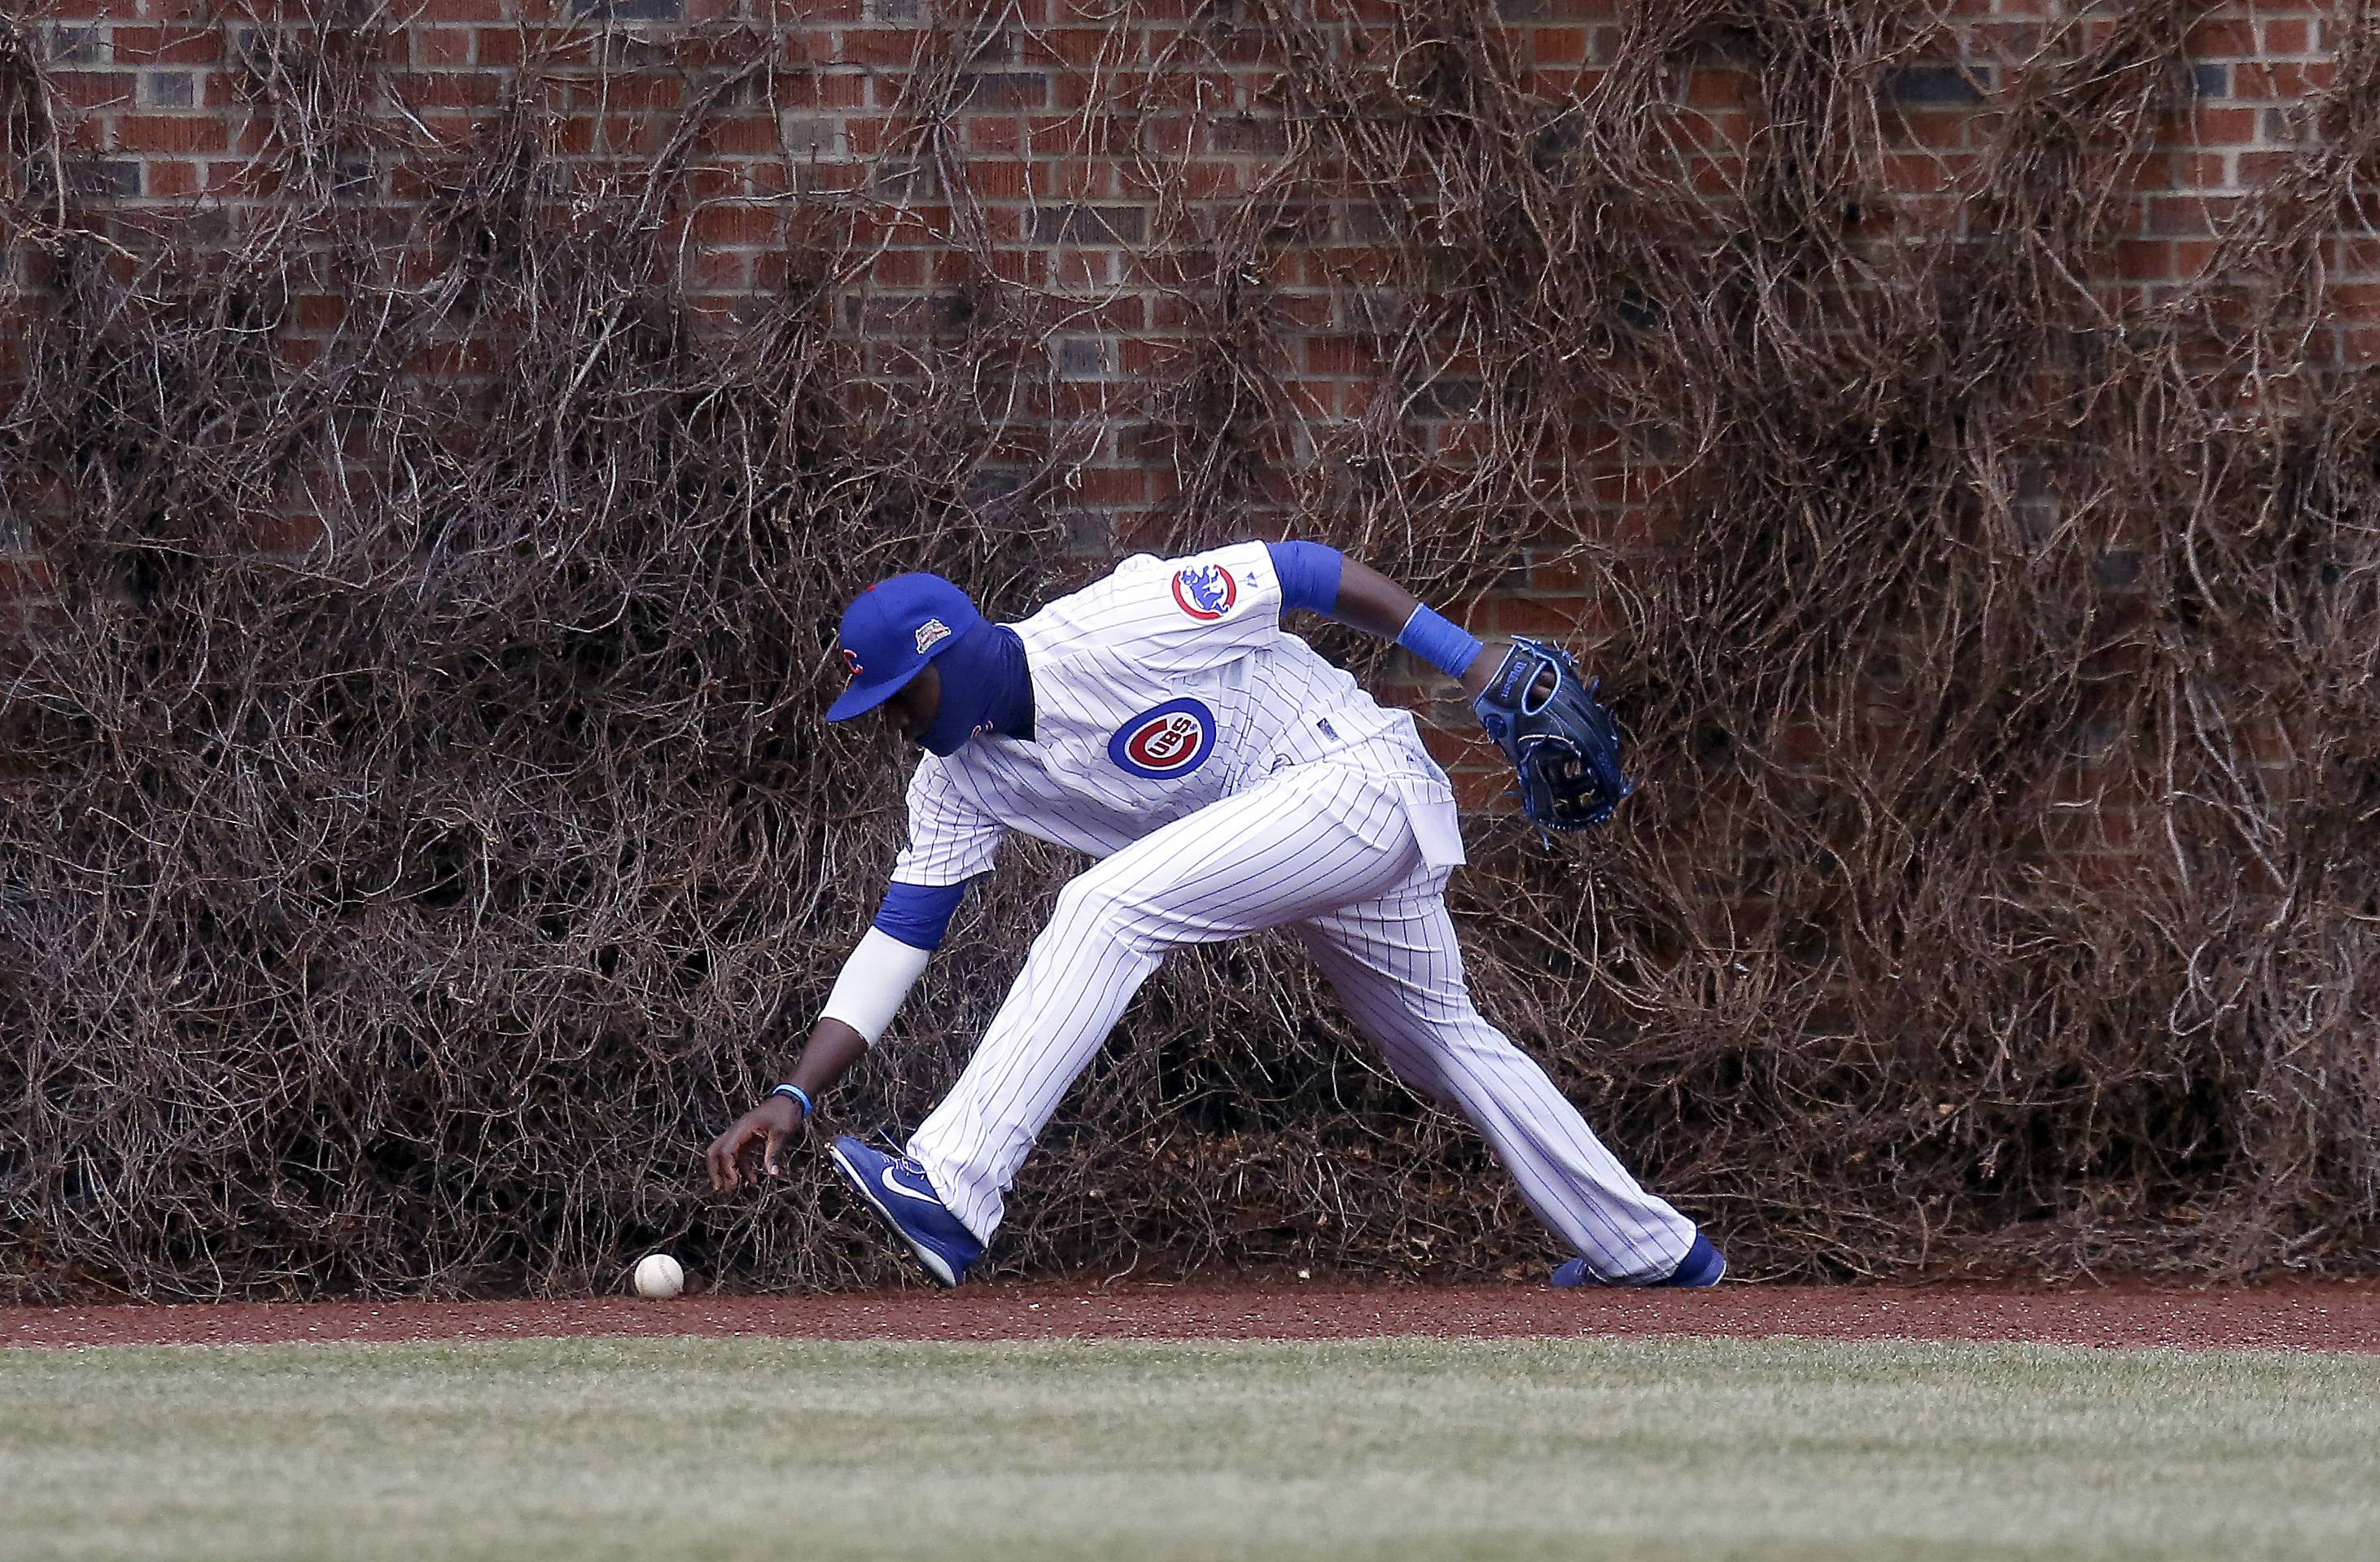 Chicago Cubs left fielder Junior Lake tries to get a handle on an RBI double by Philadelphia Phillies left fielder Domonic Brown.